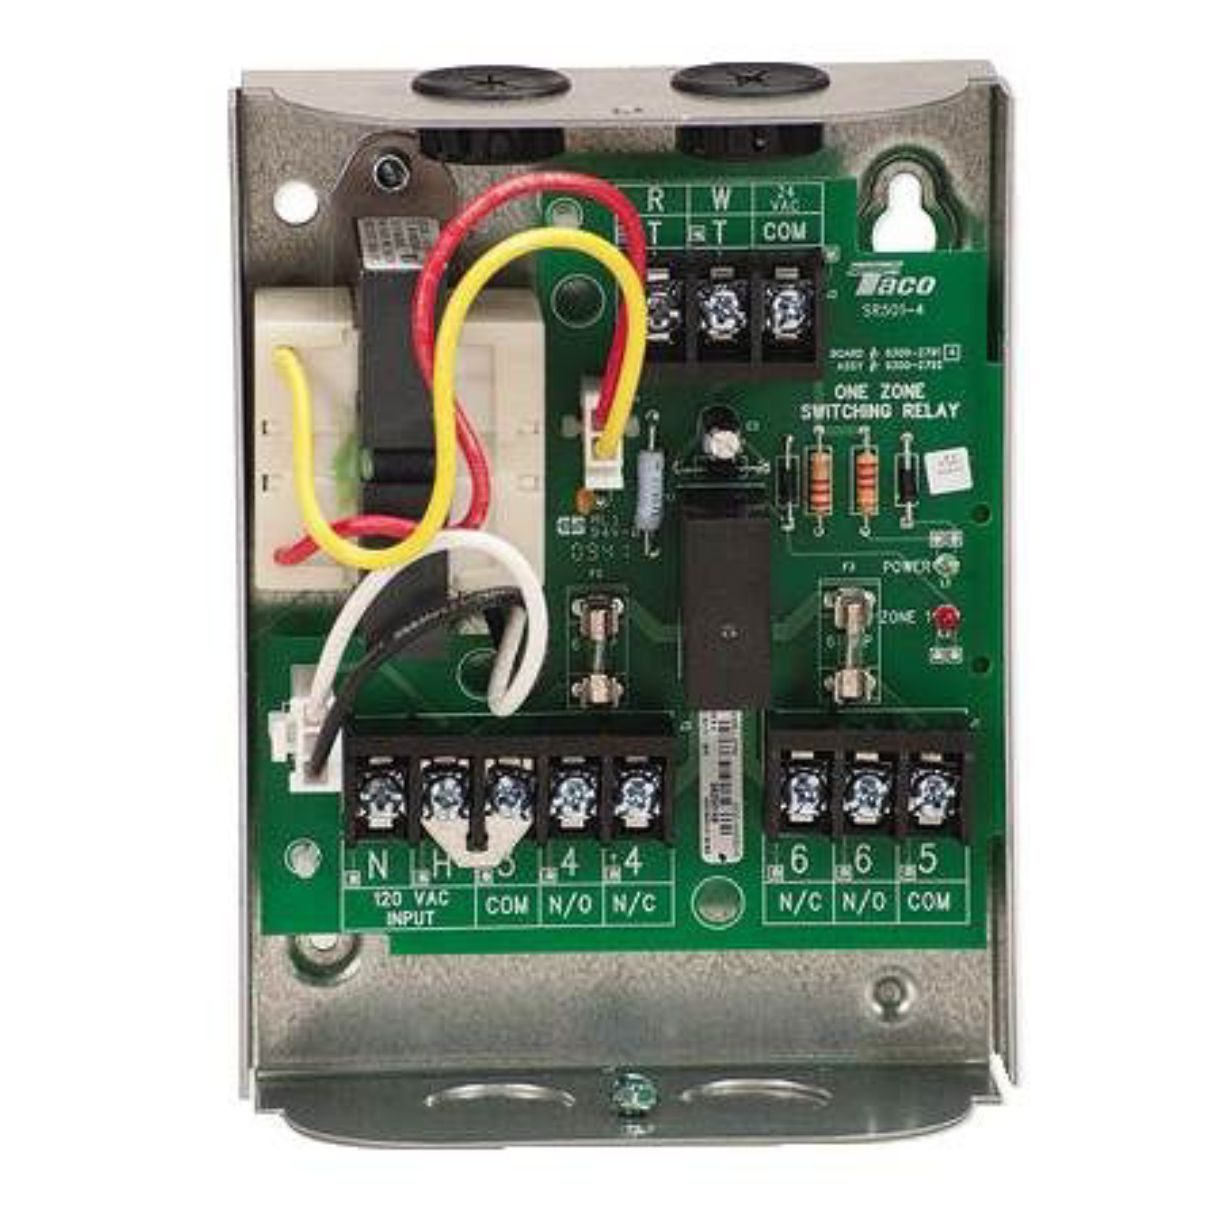 taco 503 switching relay wiring diagram taco sr501 4 hydronic parts and accessories carrier hvac  taco sr501 4 hydronic parts and